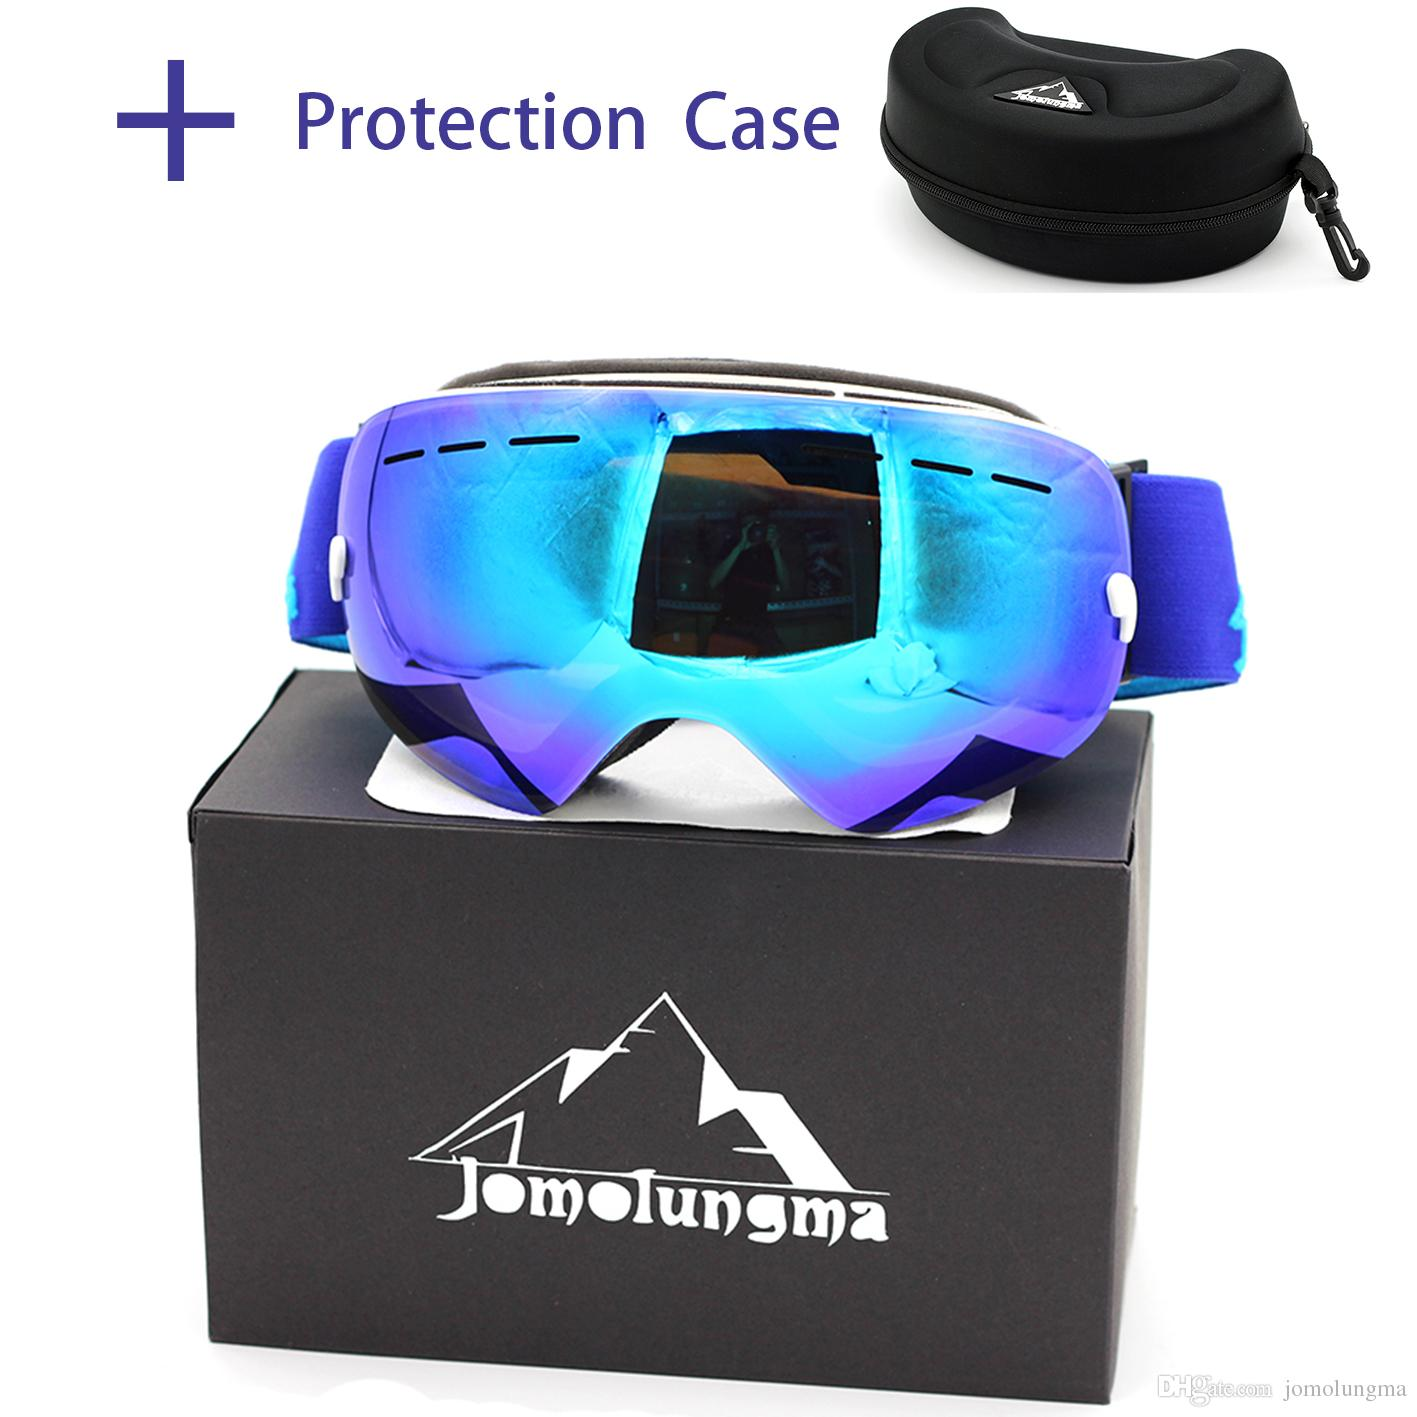 ad792956a3d 2019 Jomolungma New Ski Goggles Big Spherical Double Layers Anti Fog HD  Polarized With Protection Case Snowboard Skiing Eyewears Glasses SGC00106  From ...